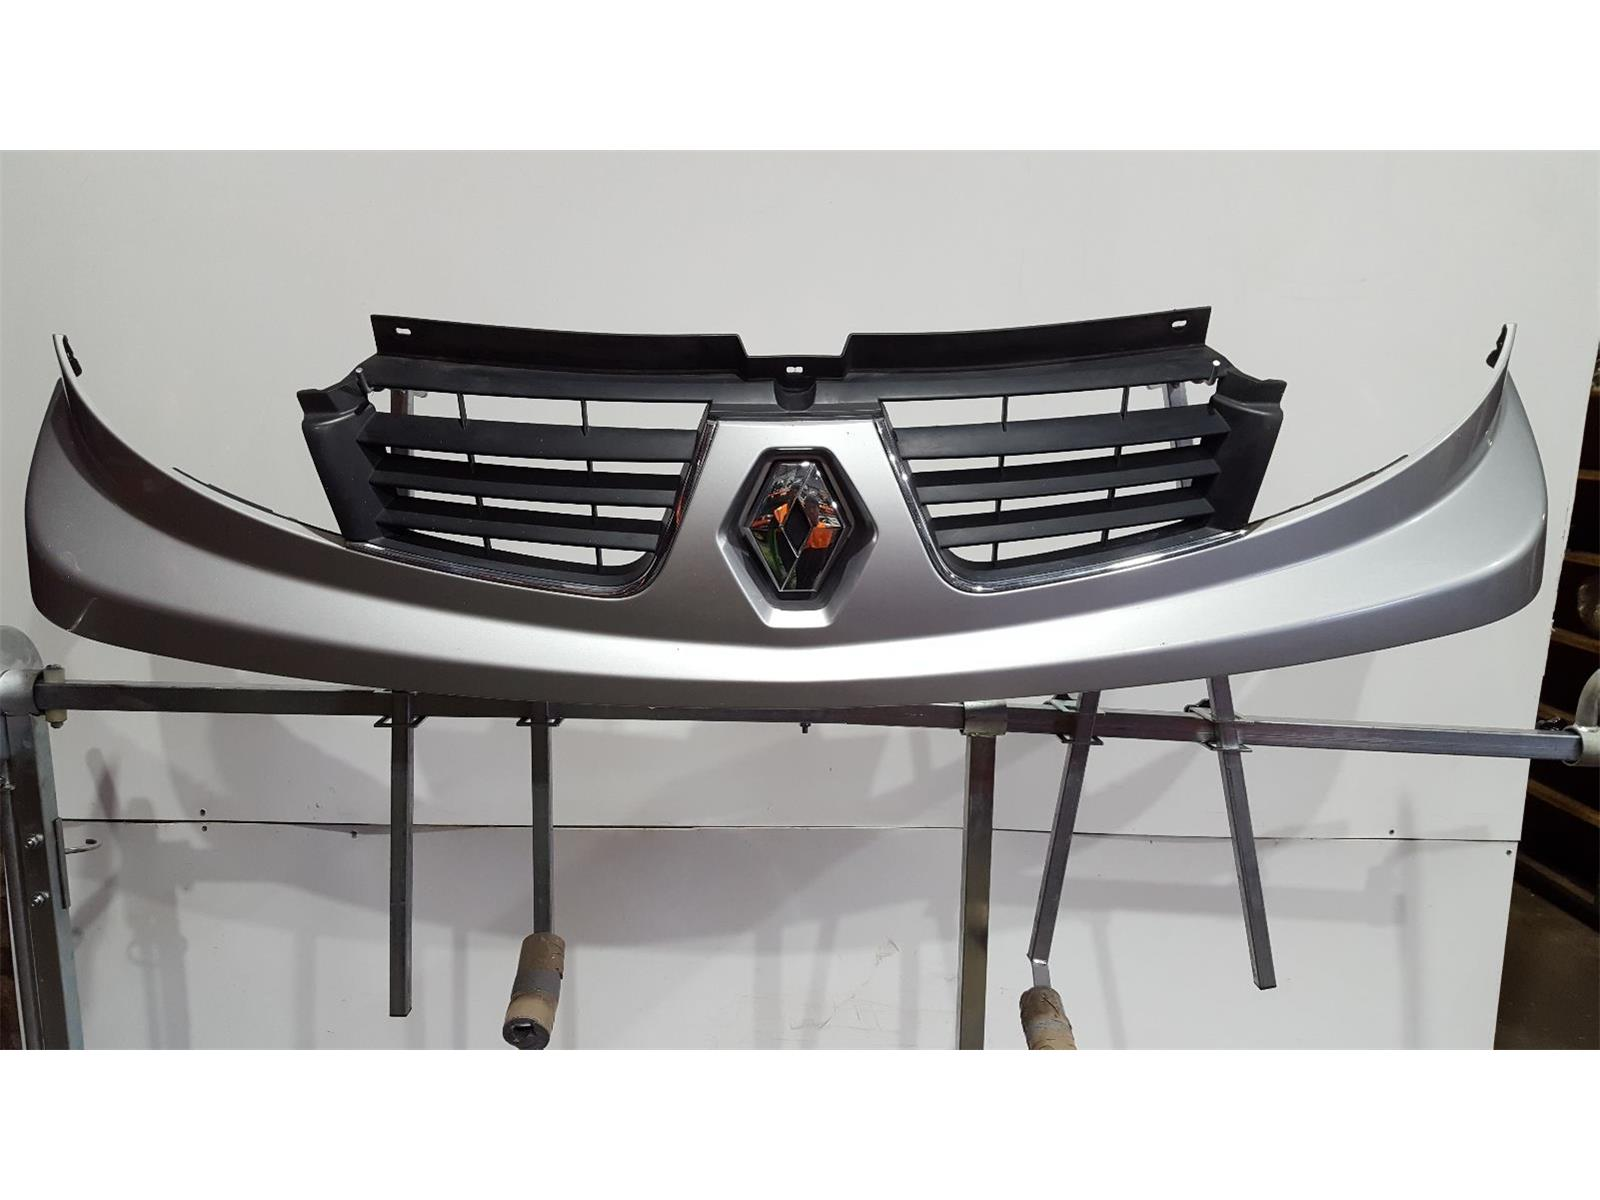 Renault Trafic 2001 To 2010 Front Grille 2009